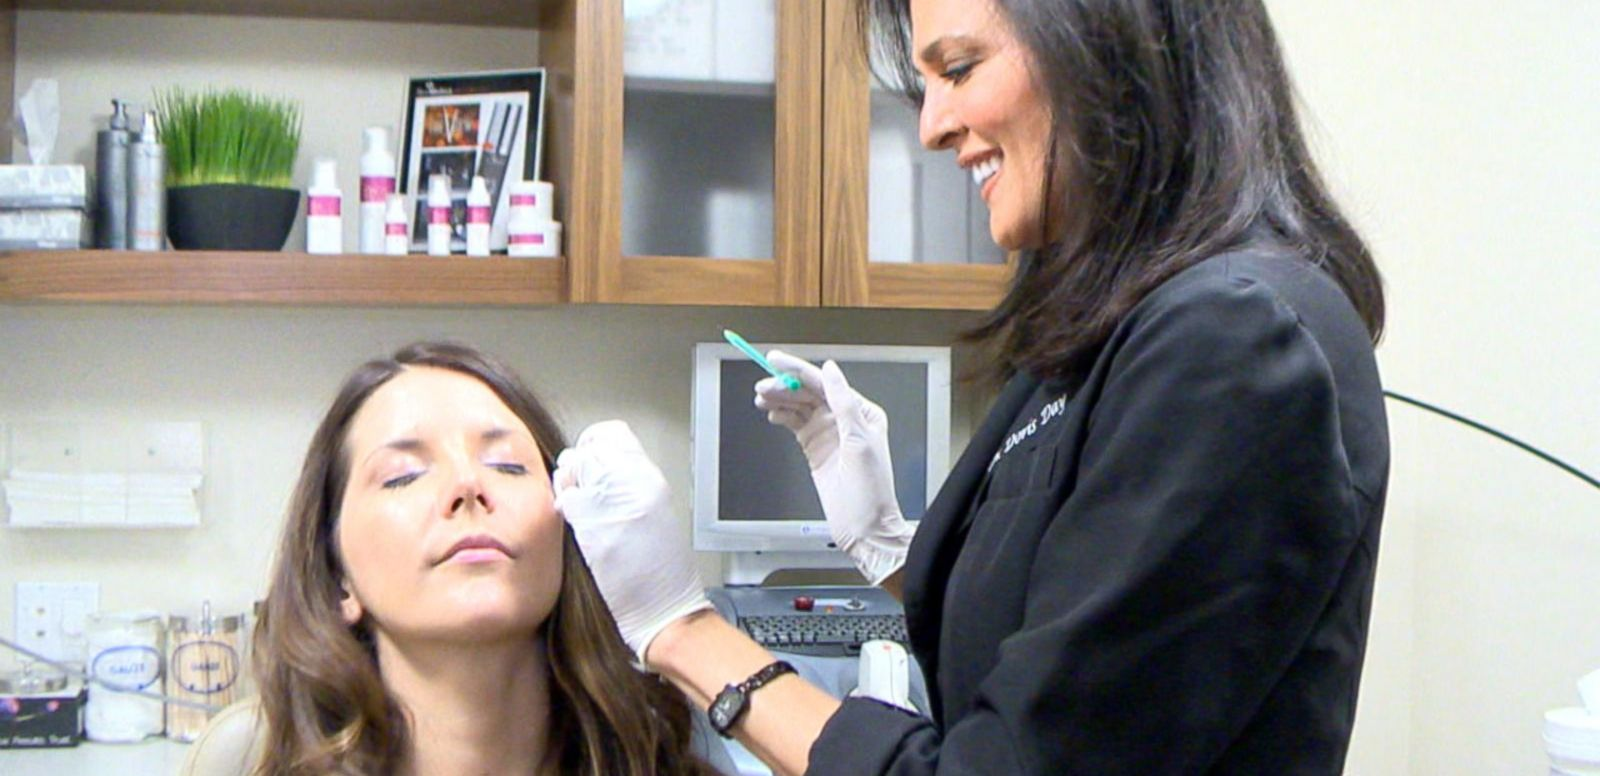 VIDEO: New Study Finds Botox May Have Long-Term Skin Benefits